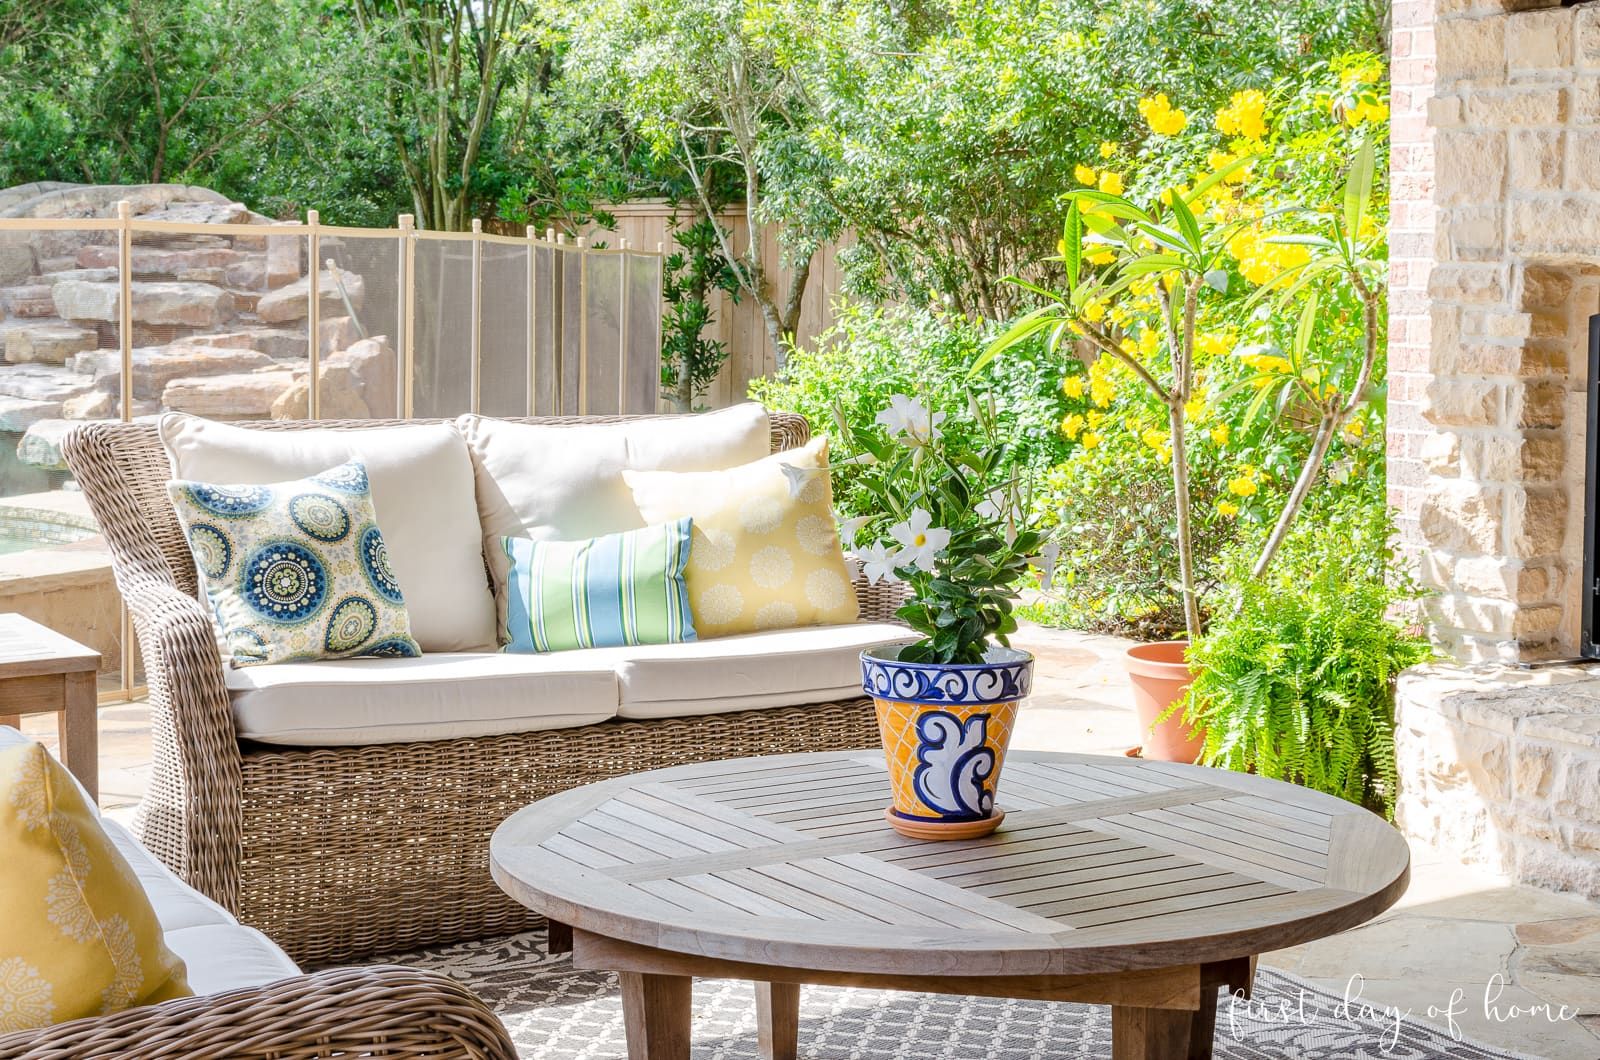 Outdoor patio with blue and yellow color scheme and teak furniture